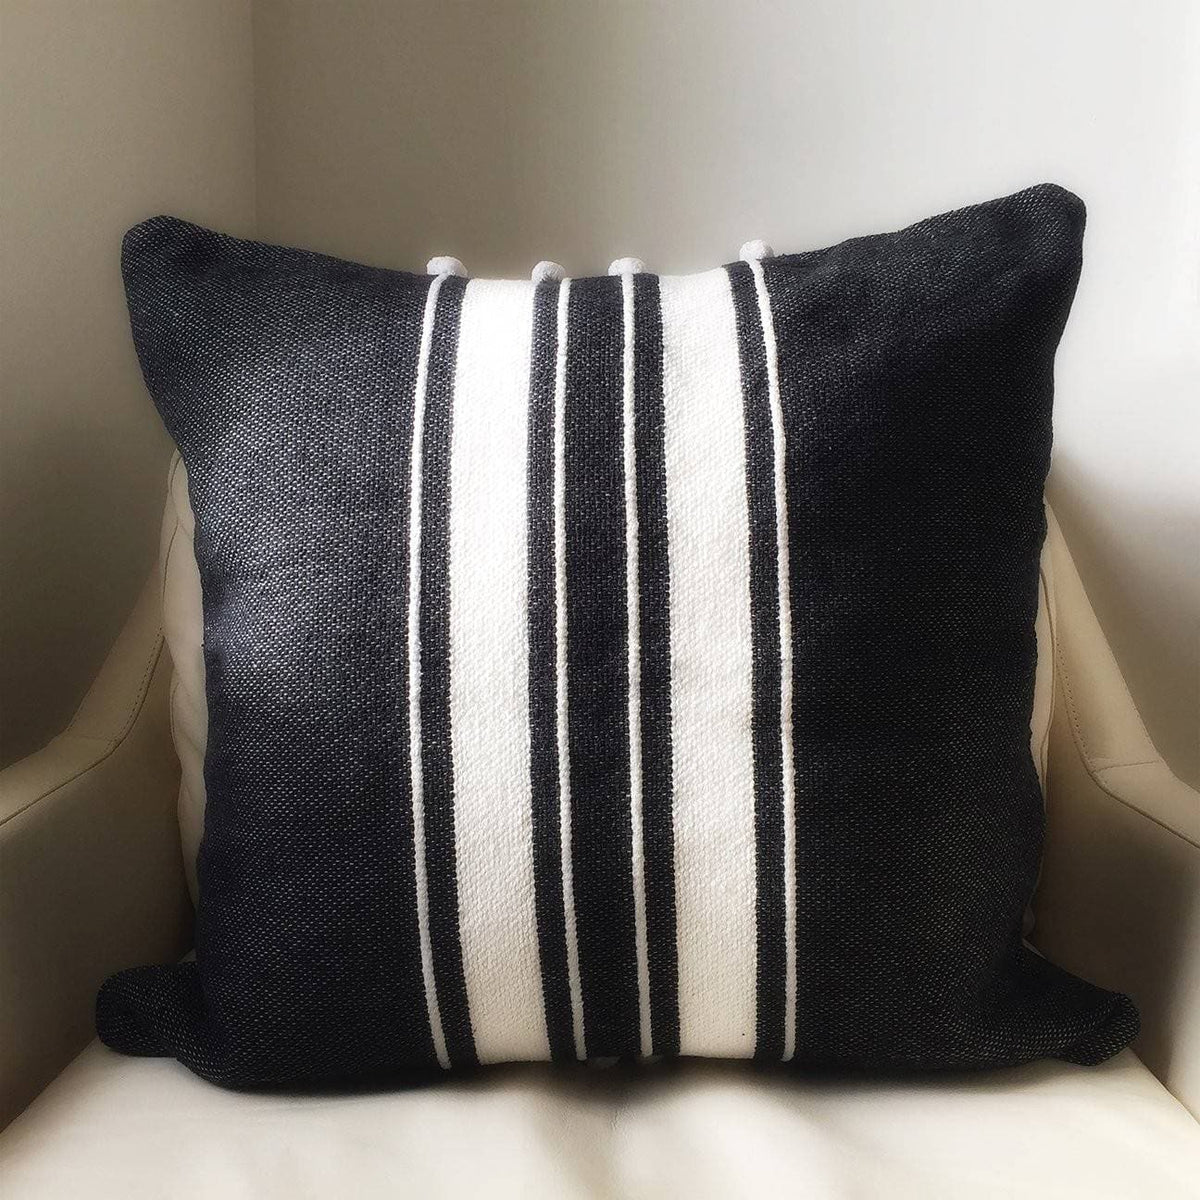 "Ribbon Stripe 20"" Throw Pillow"